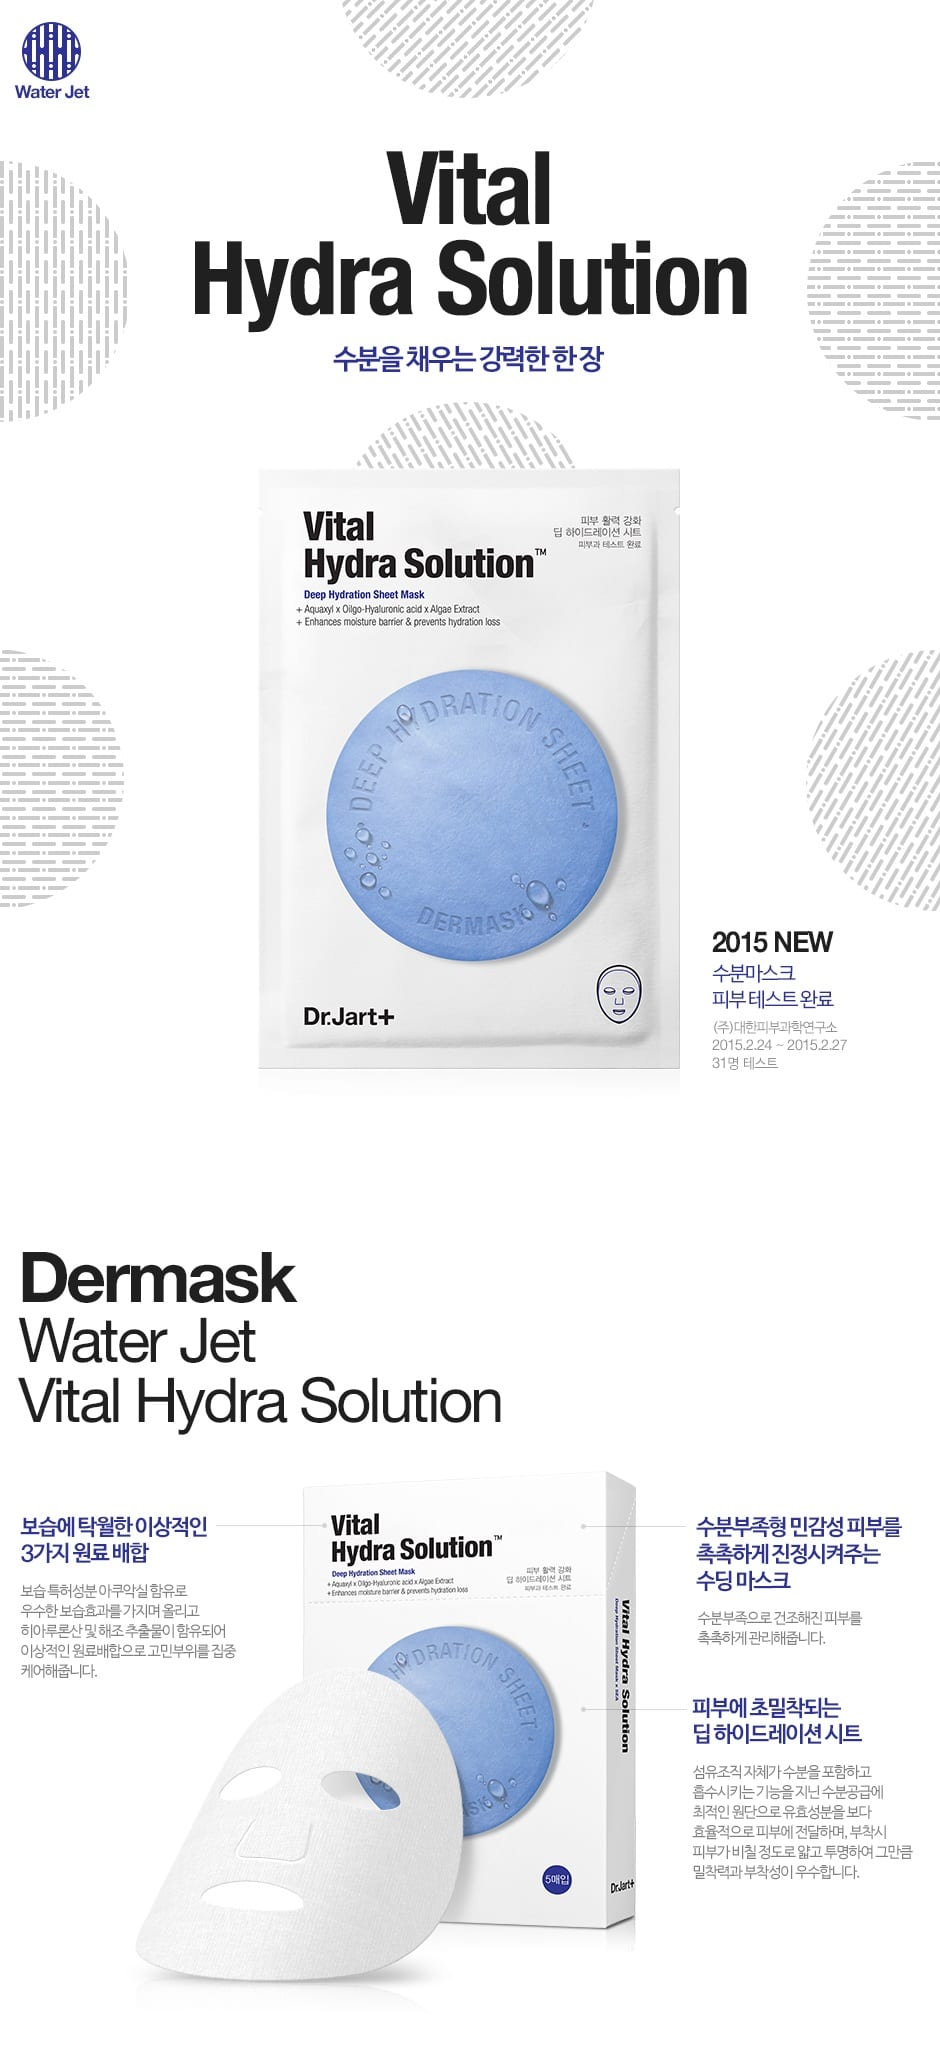 Vital Hydra Solution Mask - Mask Introduction